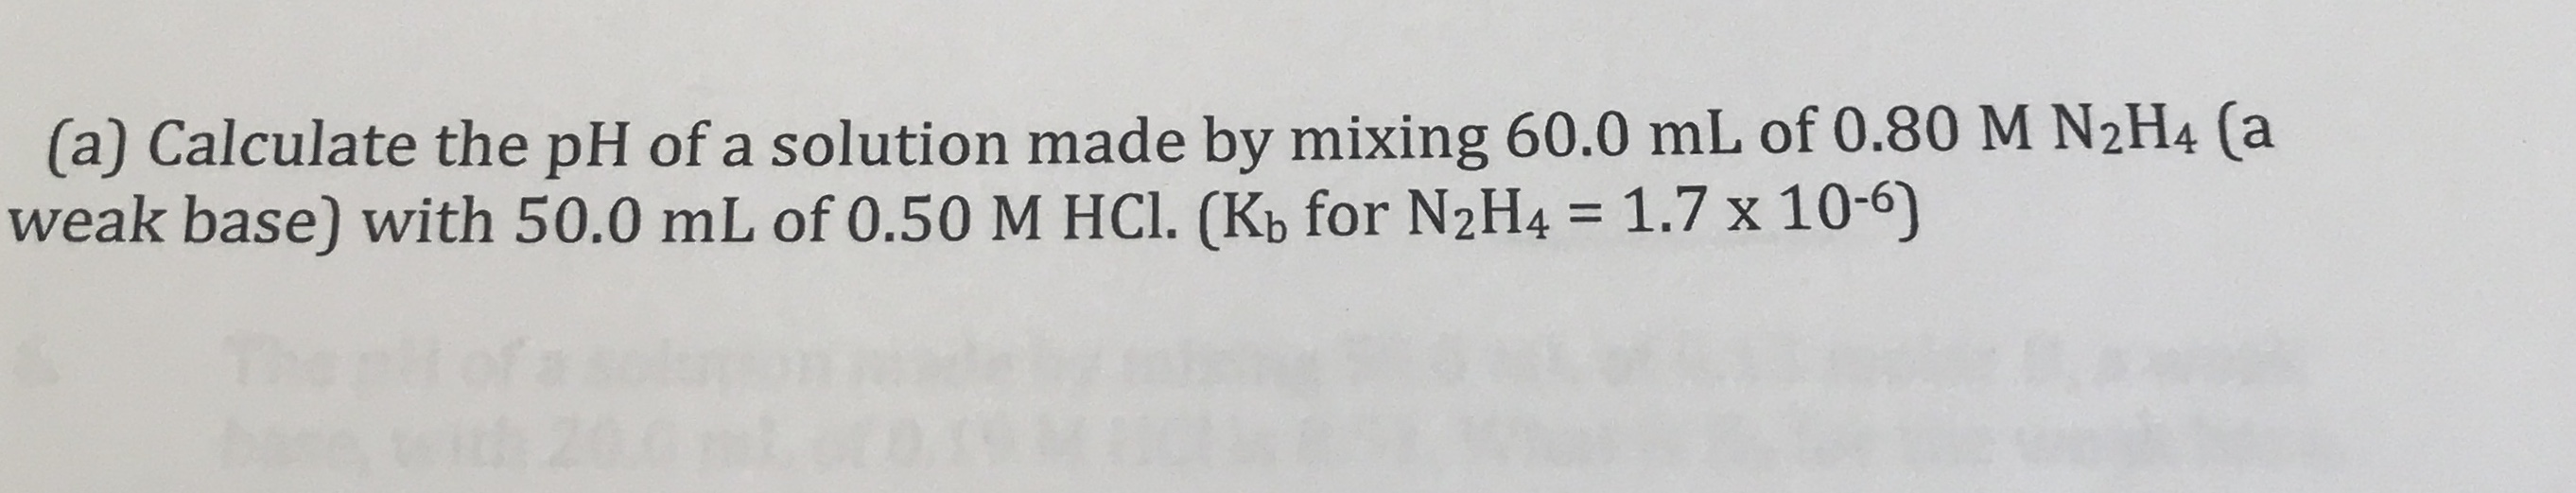 (a) Calculate the pH of a solution made by mixing 60.0 mL of 0.80 M N2H4 (a weak base) with 50.0 mL of 0.50 M HCl. (Kb for N2H4 = 1.7 x 10-6) %3D